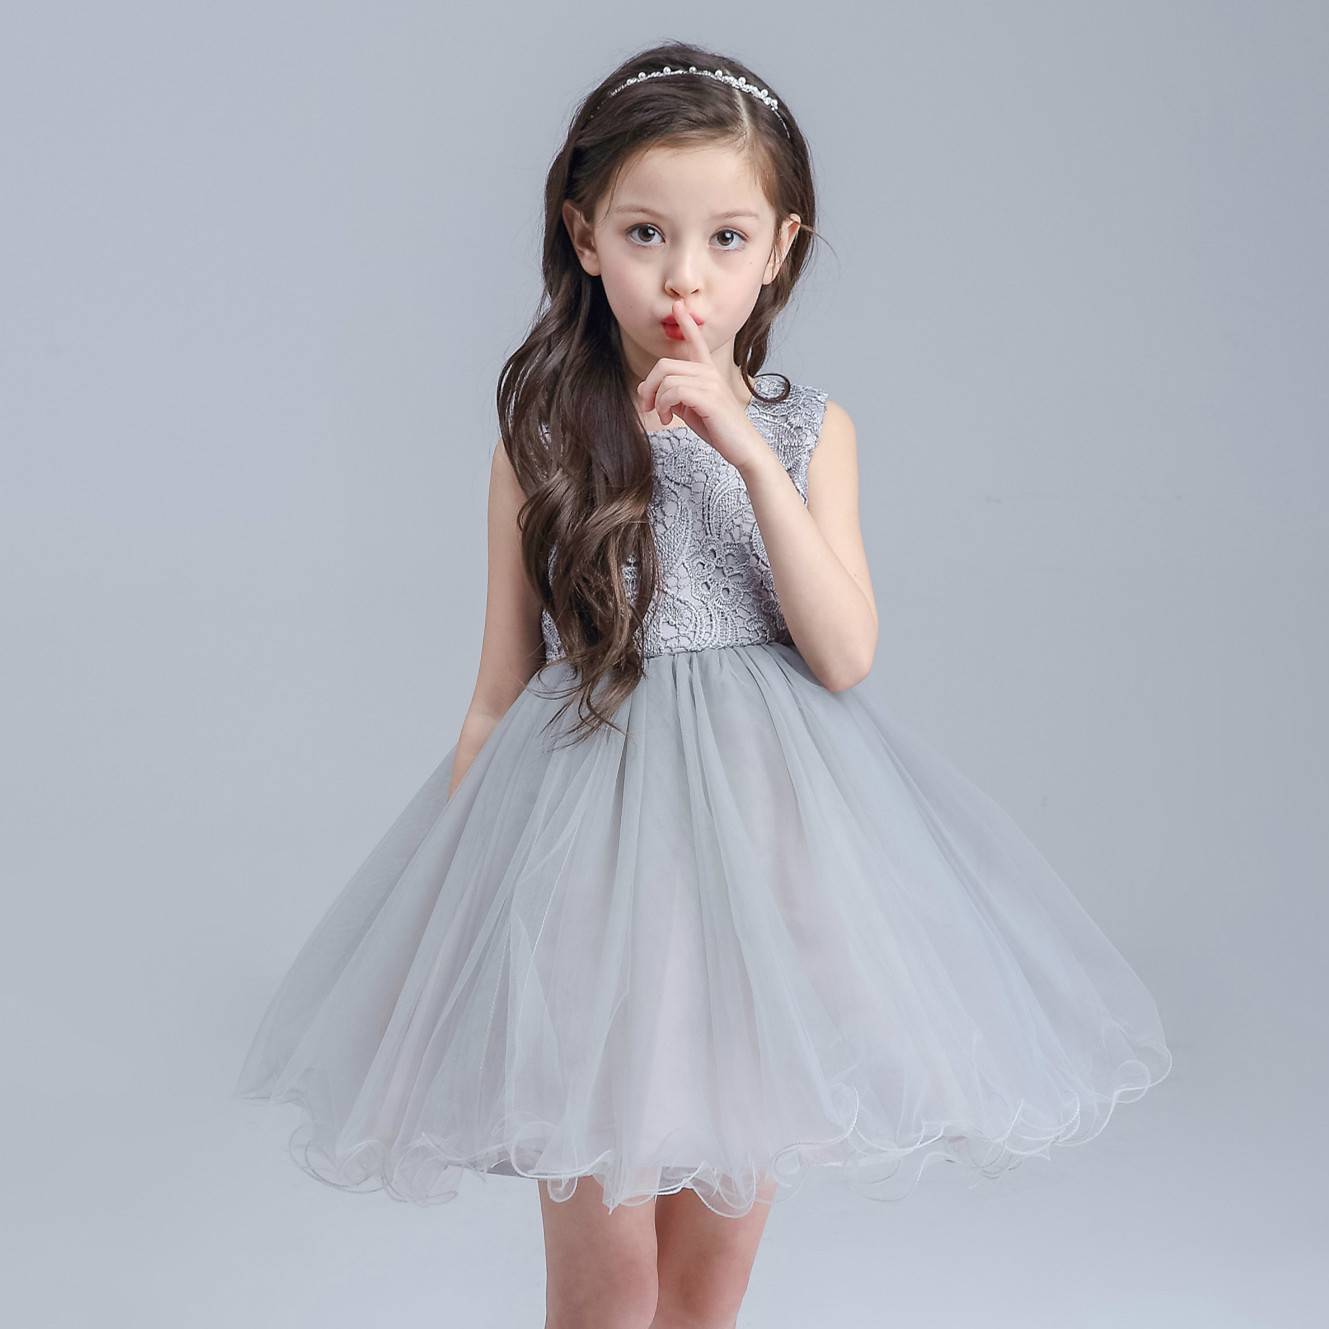 Fine Cheap Party Dresses For Girls Component - All Wedding Dresses ...